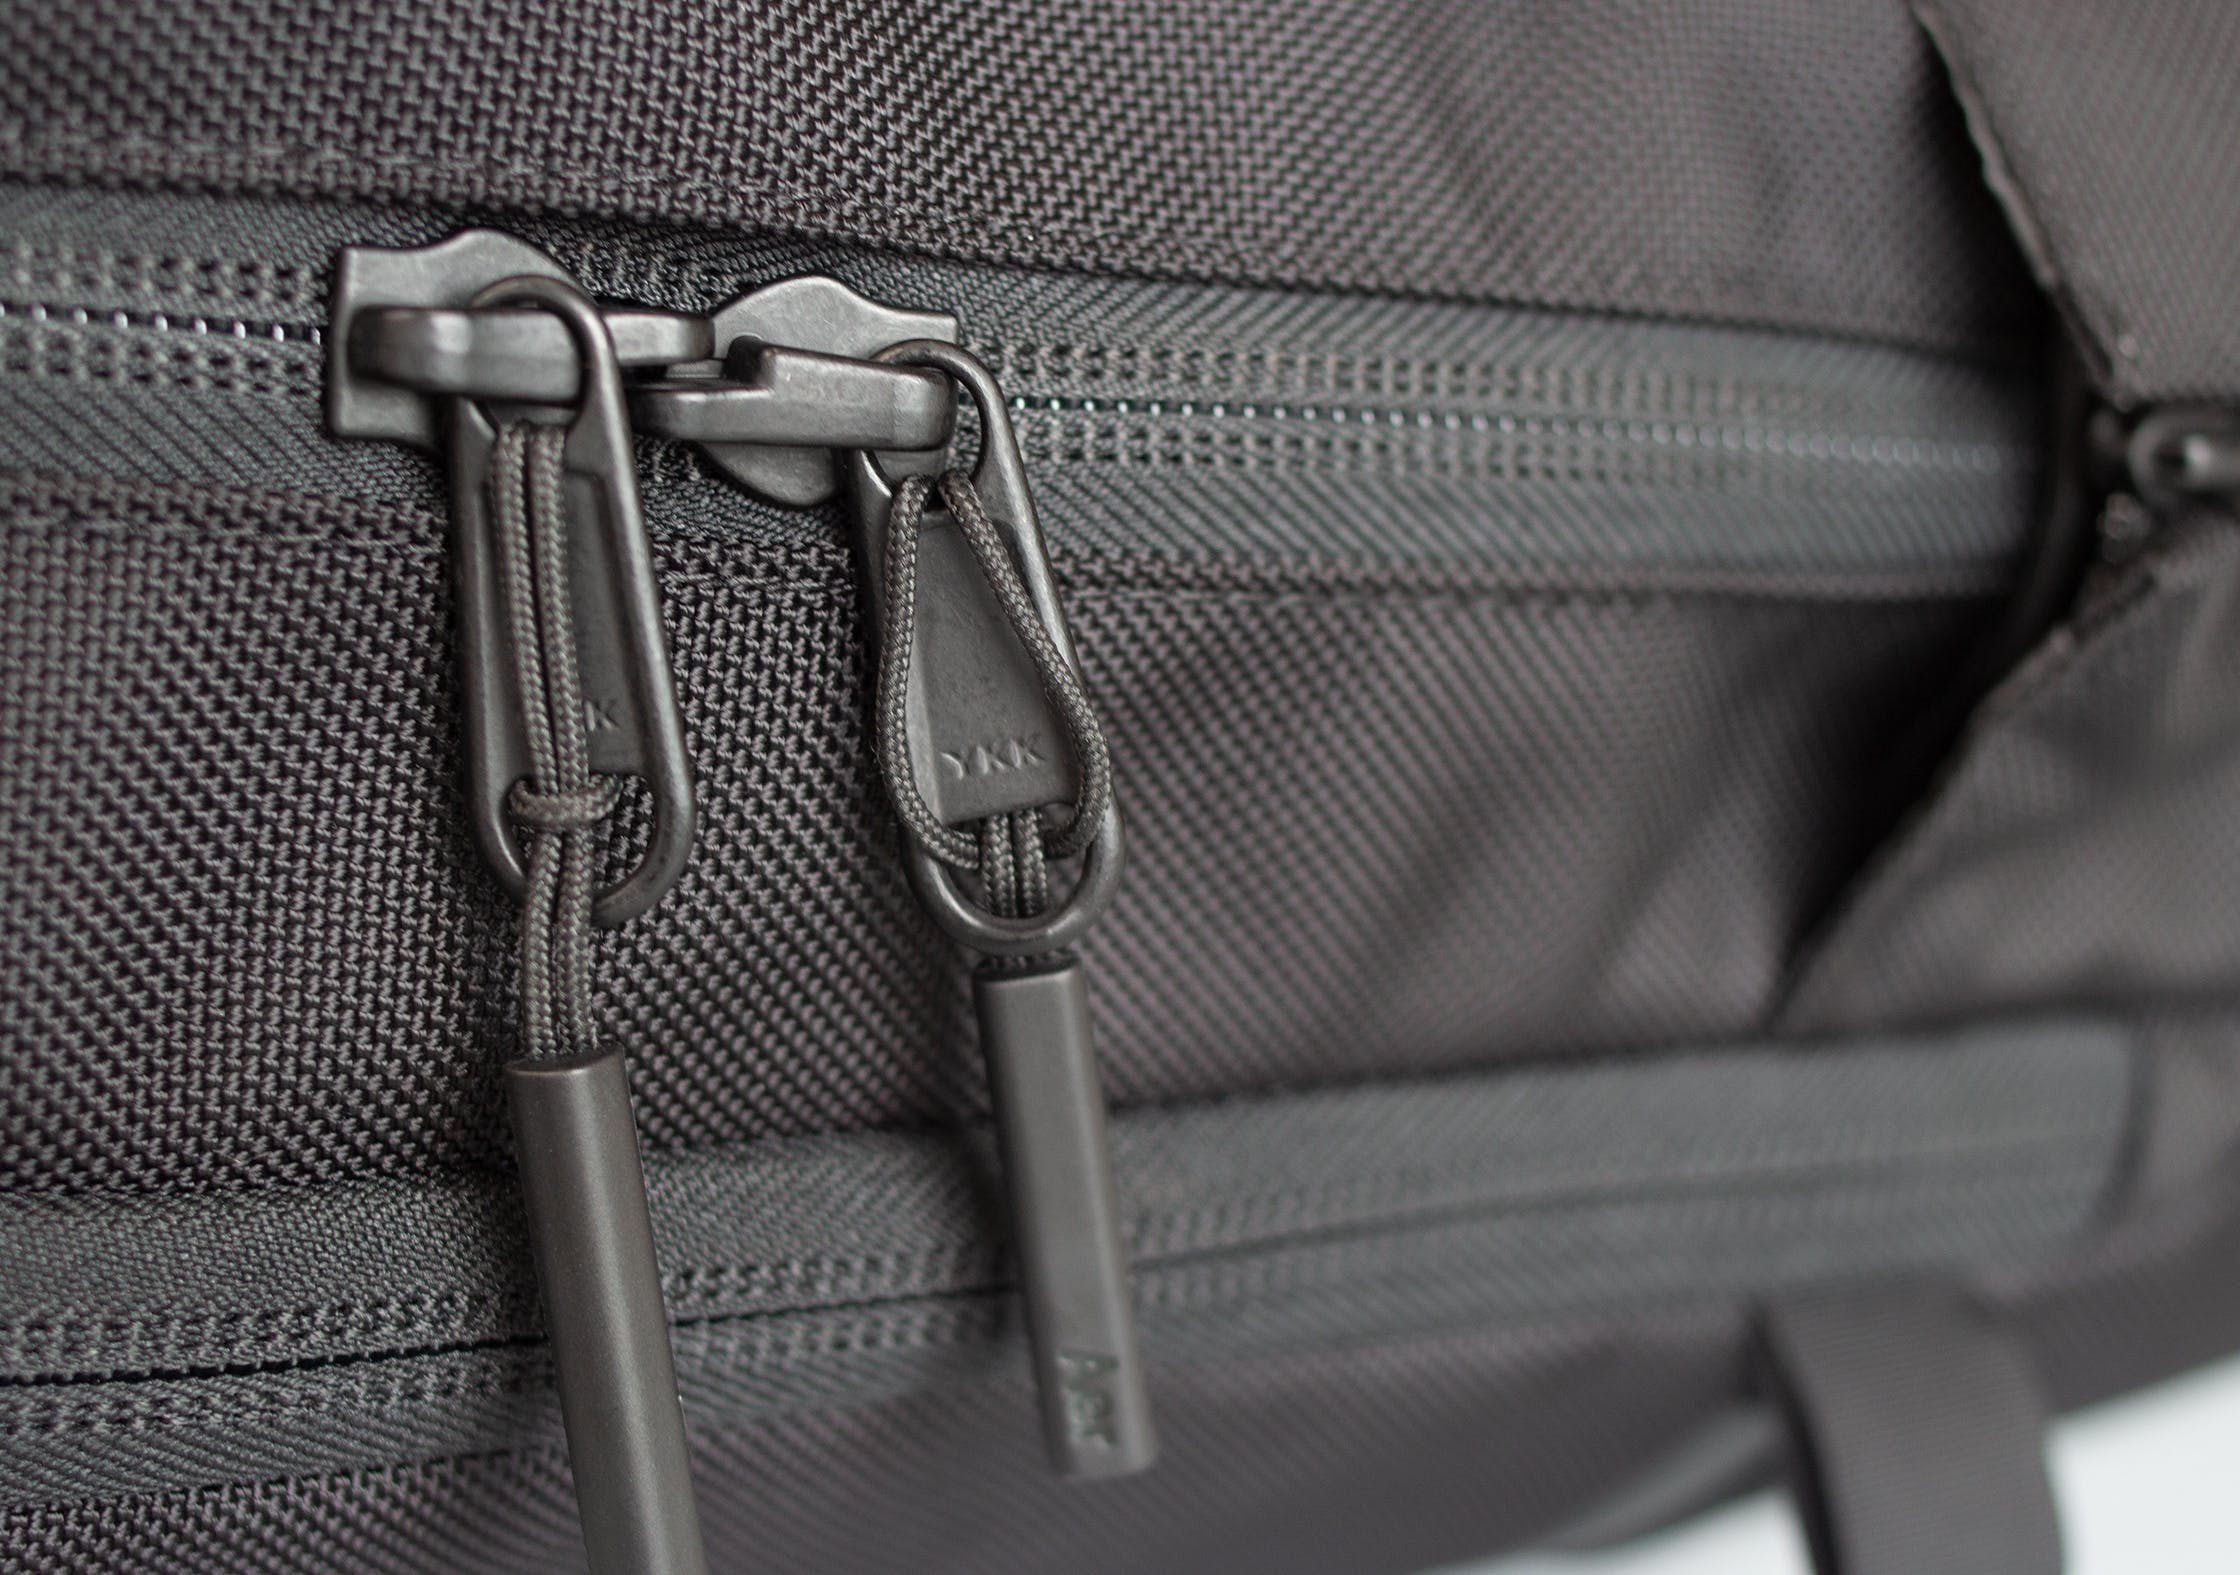 Aer Flight Pack 2 YKK Zippers